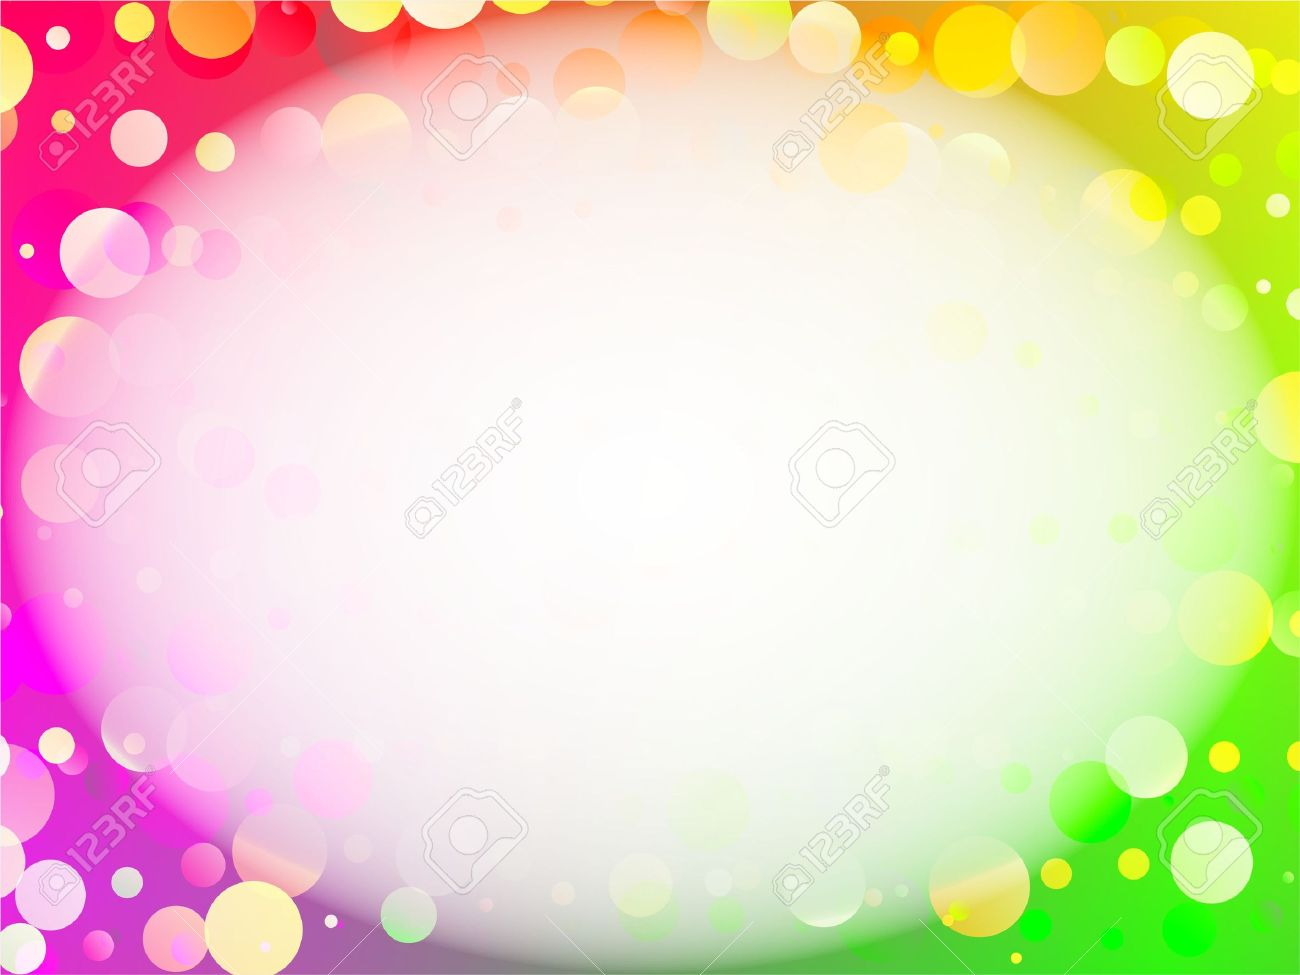 Abstract Rainbow Circles Background Page Border Design Stock Photo